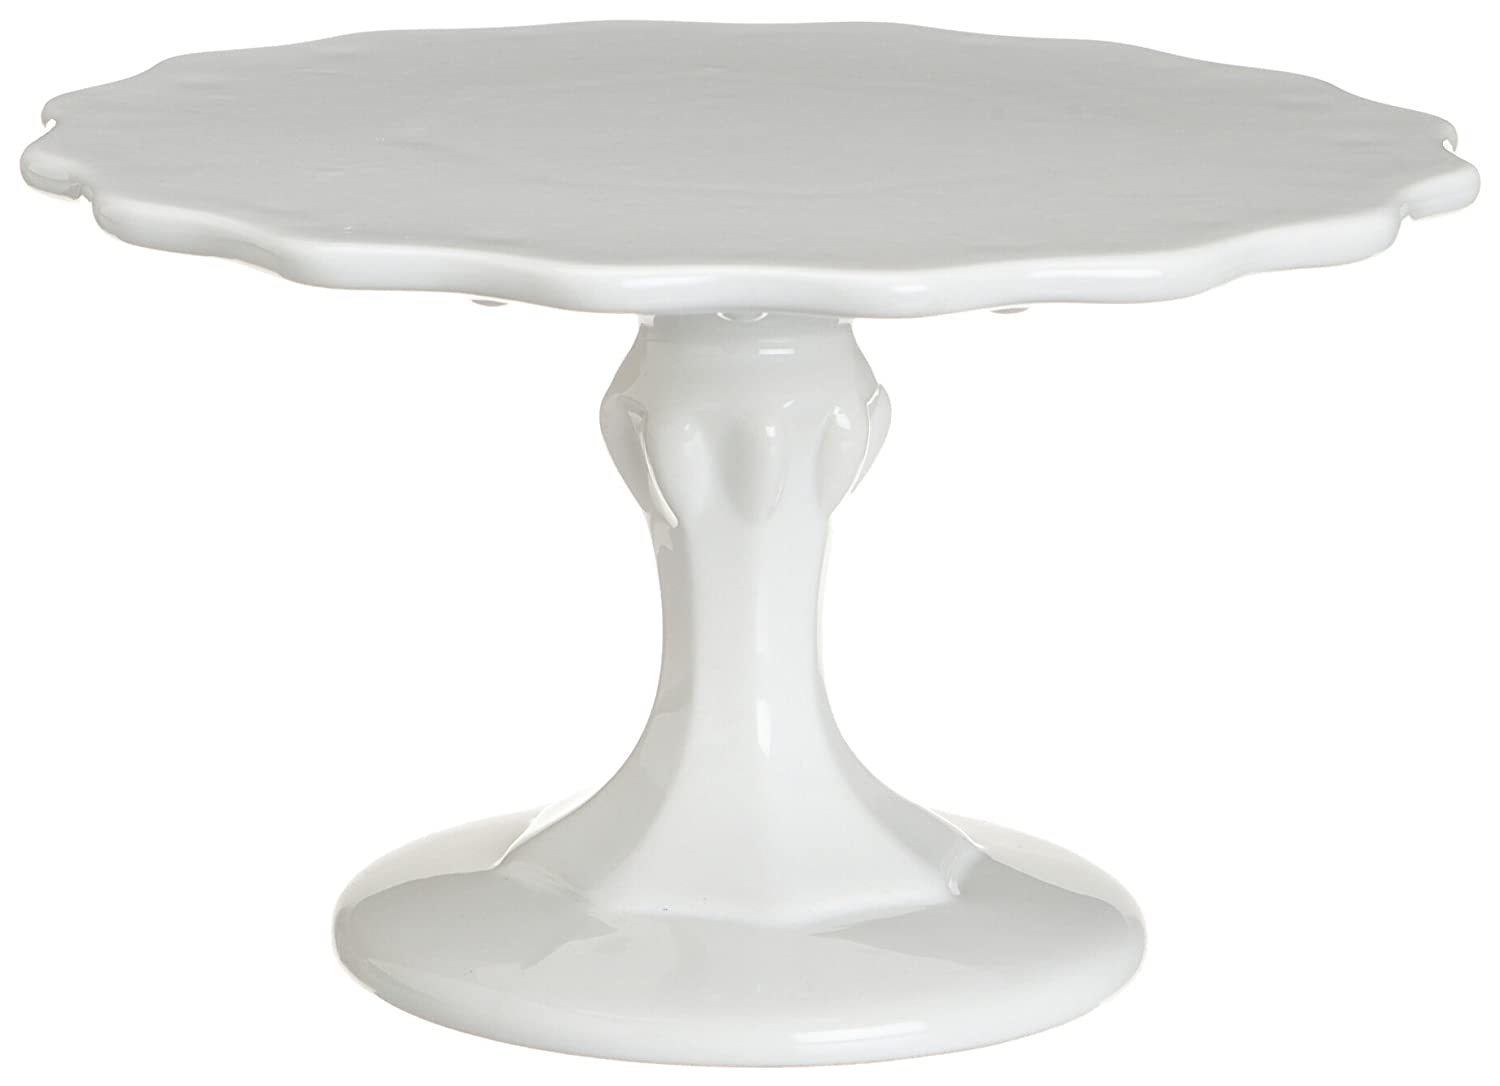 Find great deals on eBay for pedestal cake stands. Shop with confidence.